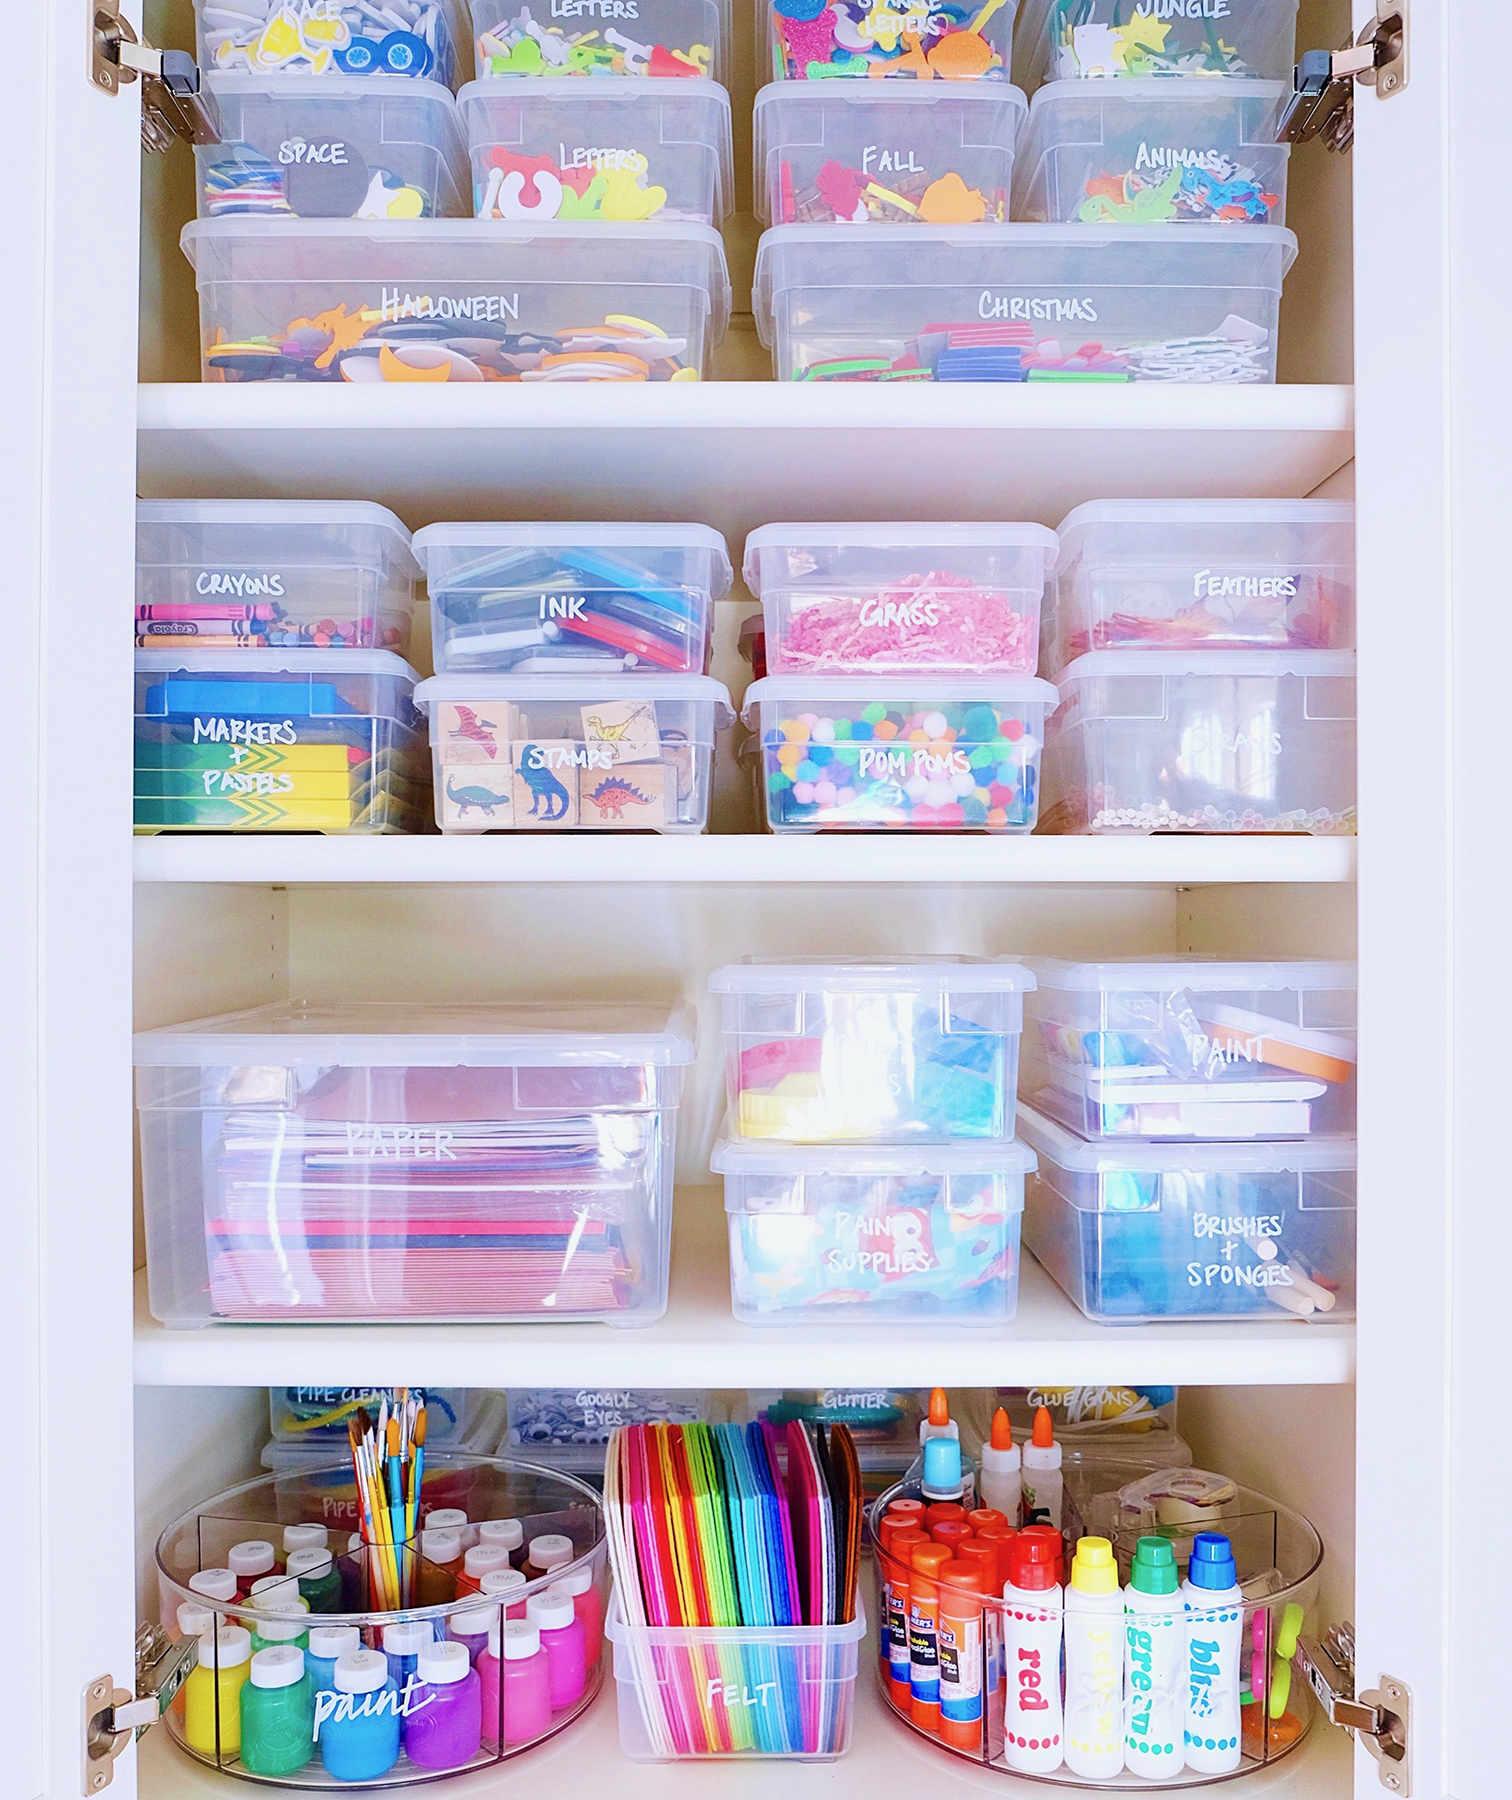 Shelves with art and craft supplies